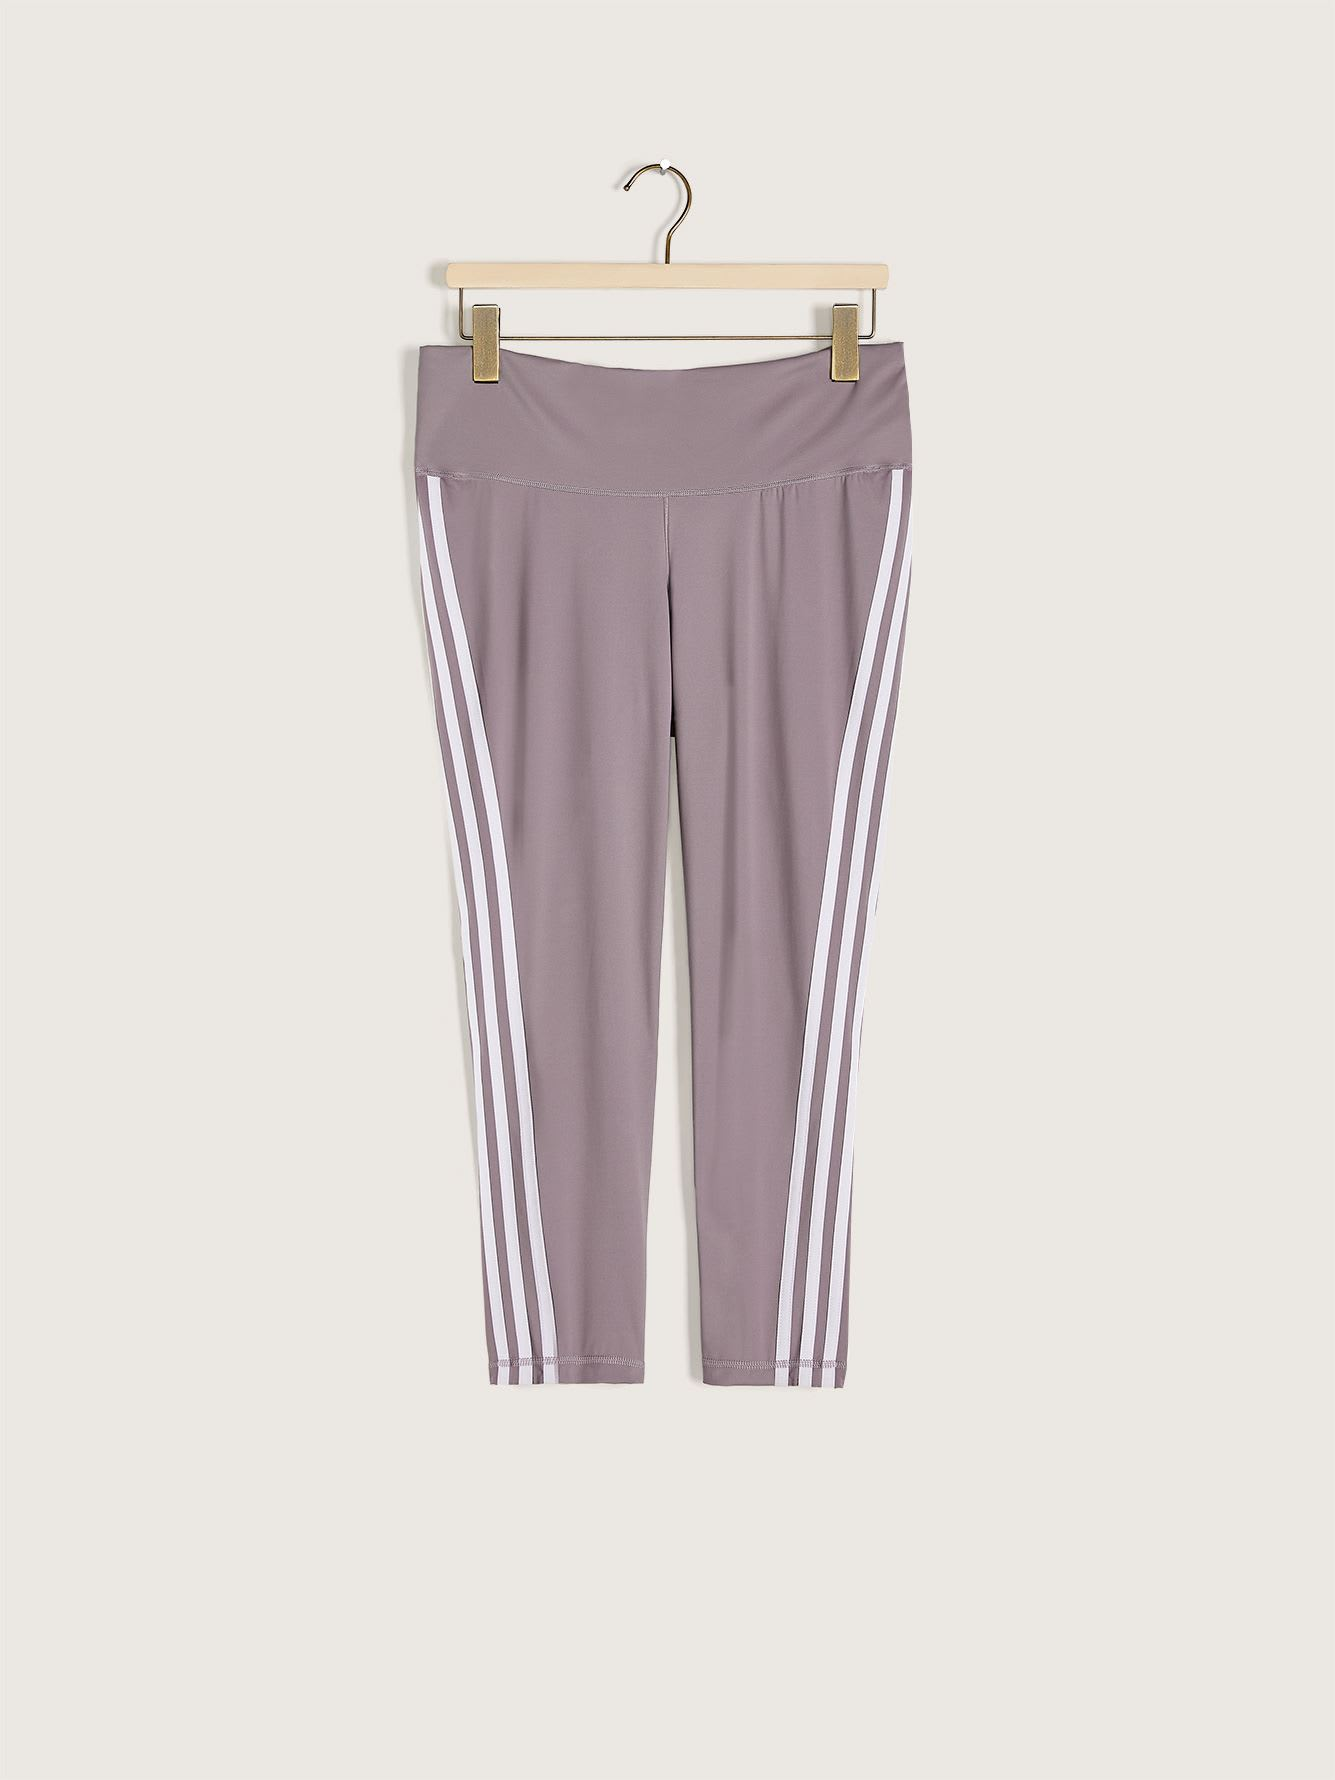 Believe This 7/8 Tights - adidas